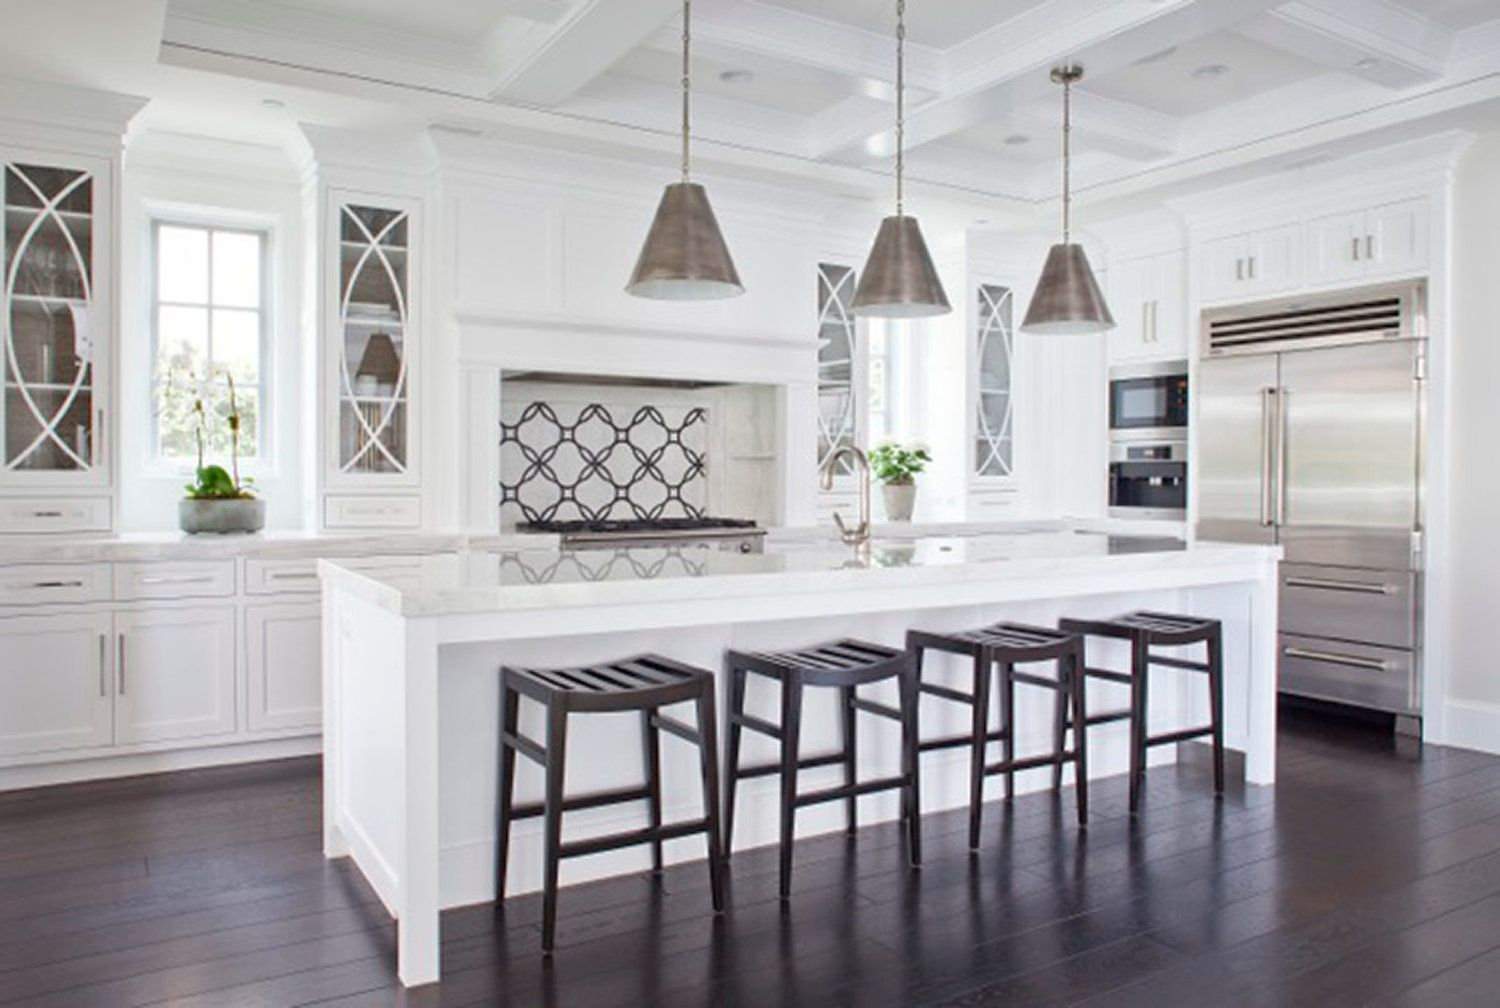 Love The Tangle Pattern Fridge In 2020 Glass Fronted Kitchen Cabinets Home Glass Cabinet Doors